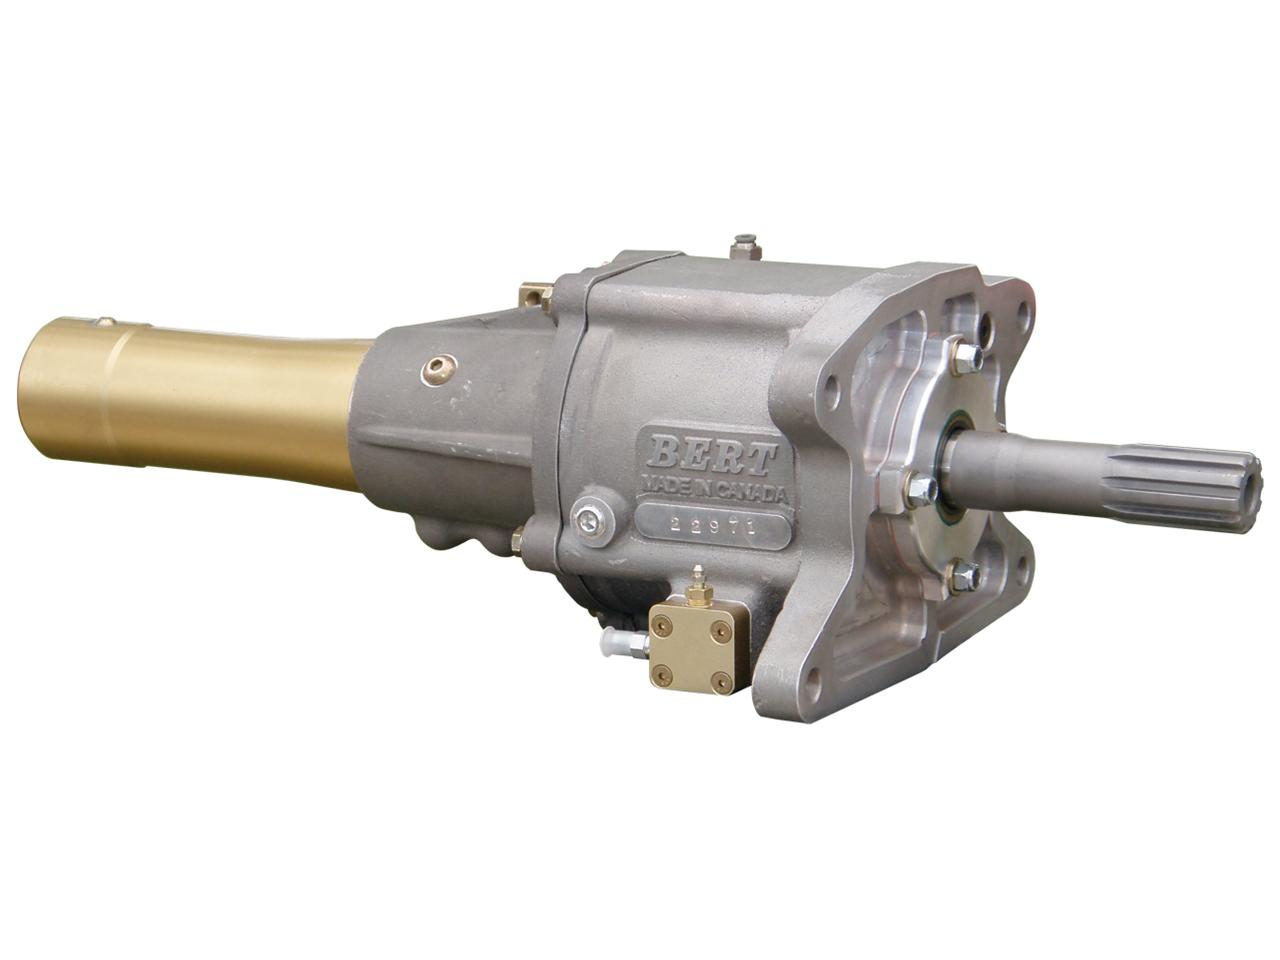 Picture of Bert SG 1300/1400 Transmission